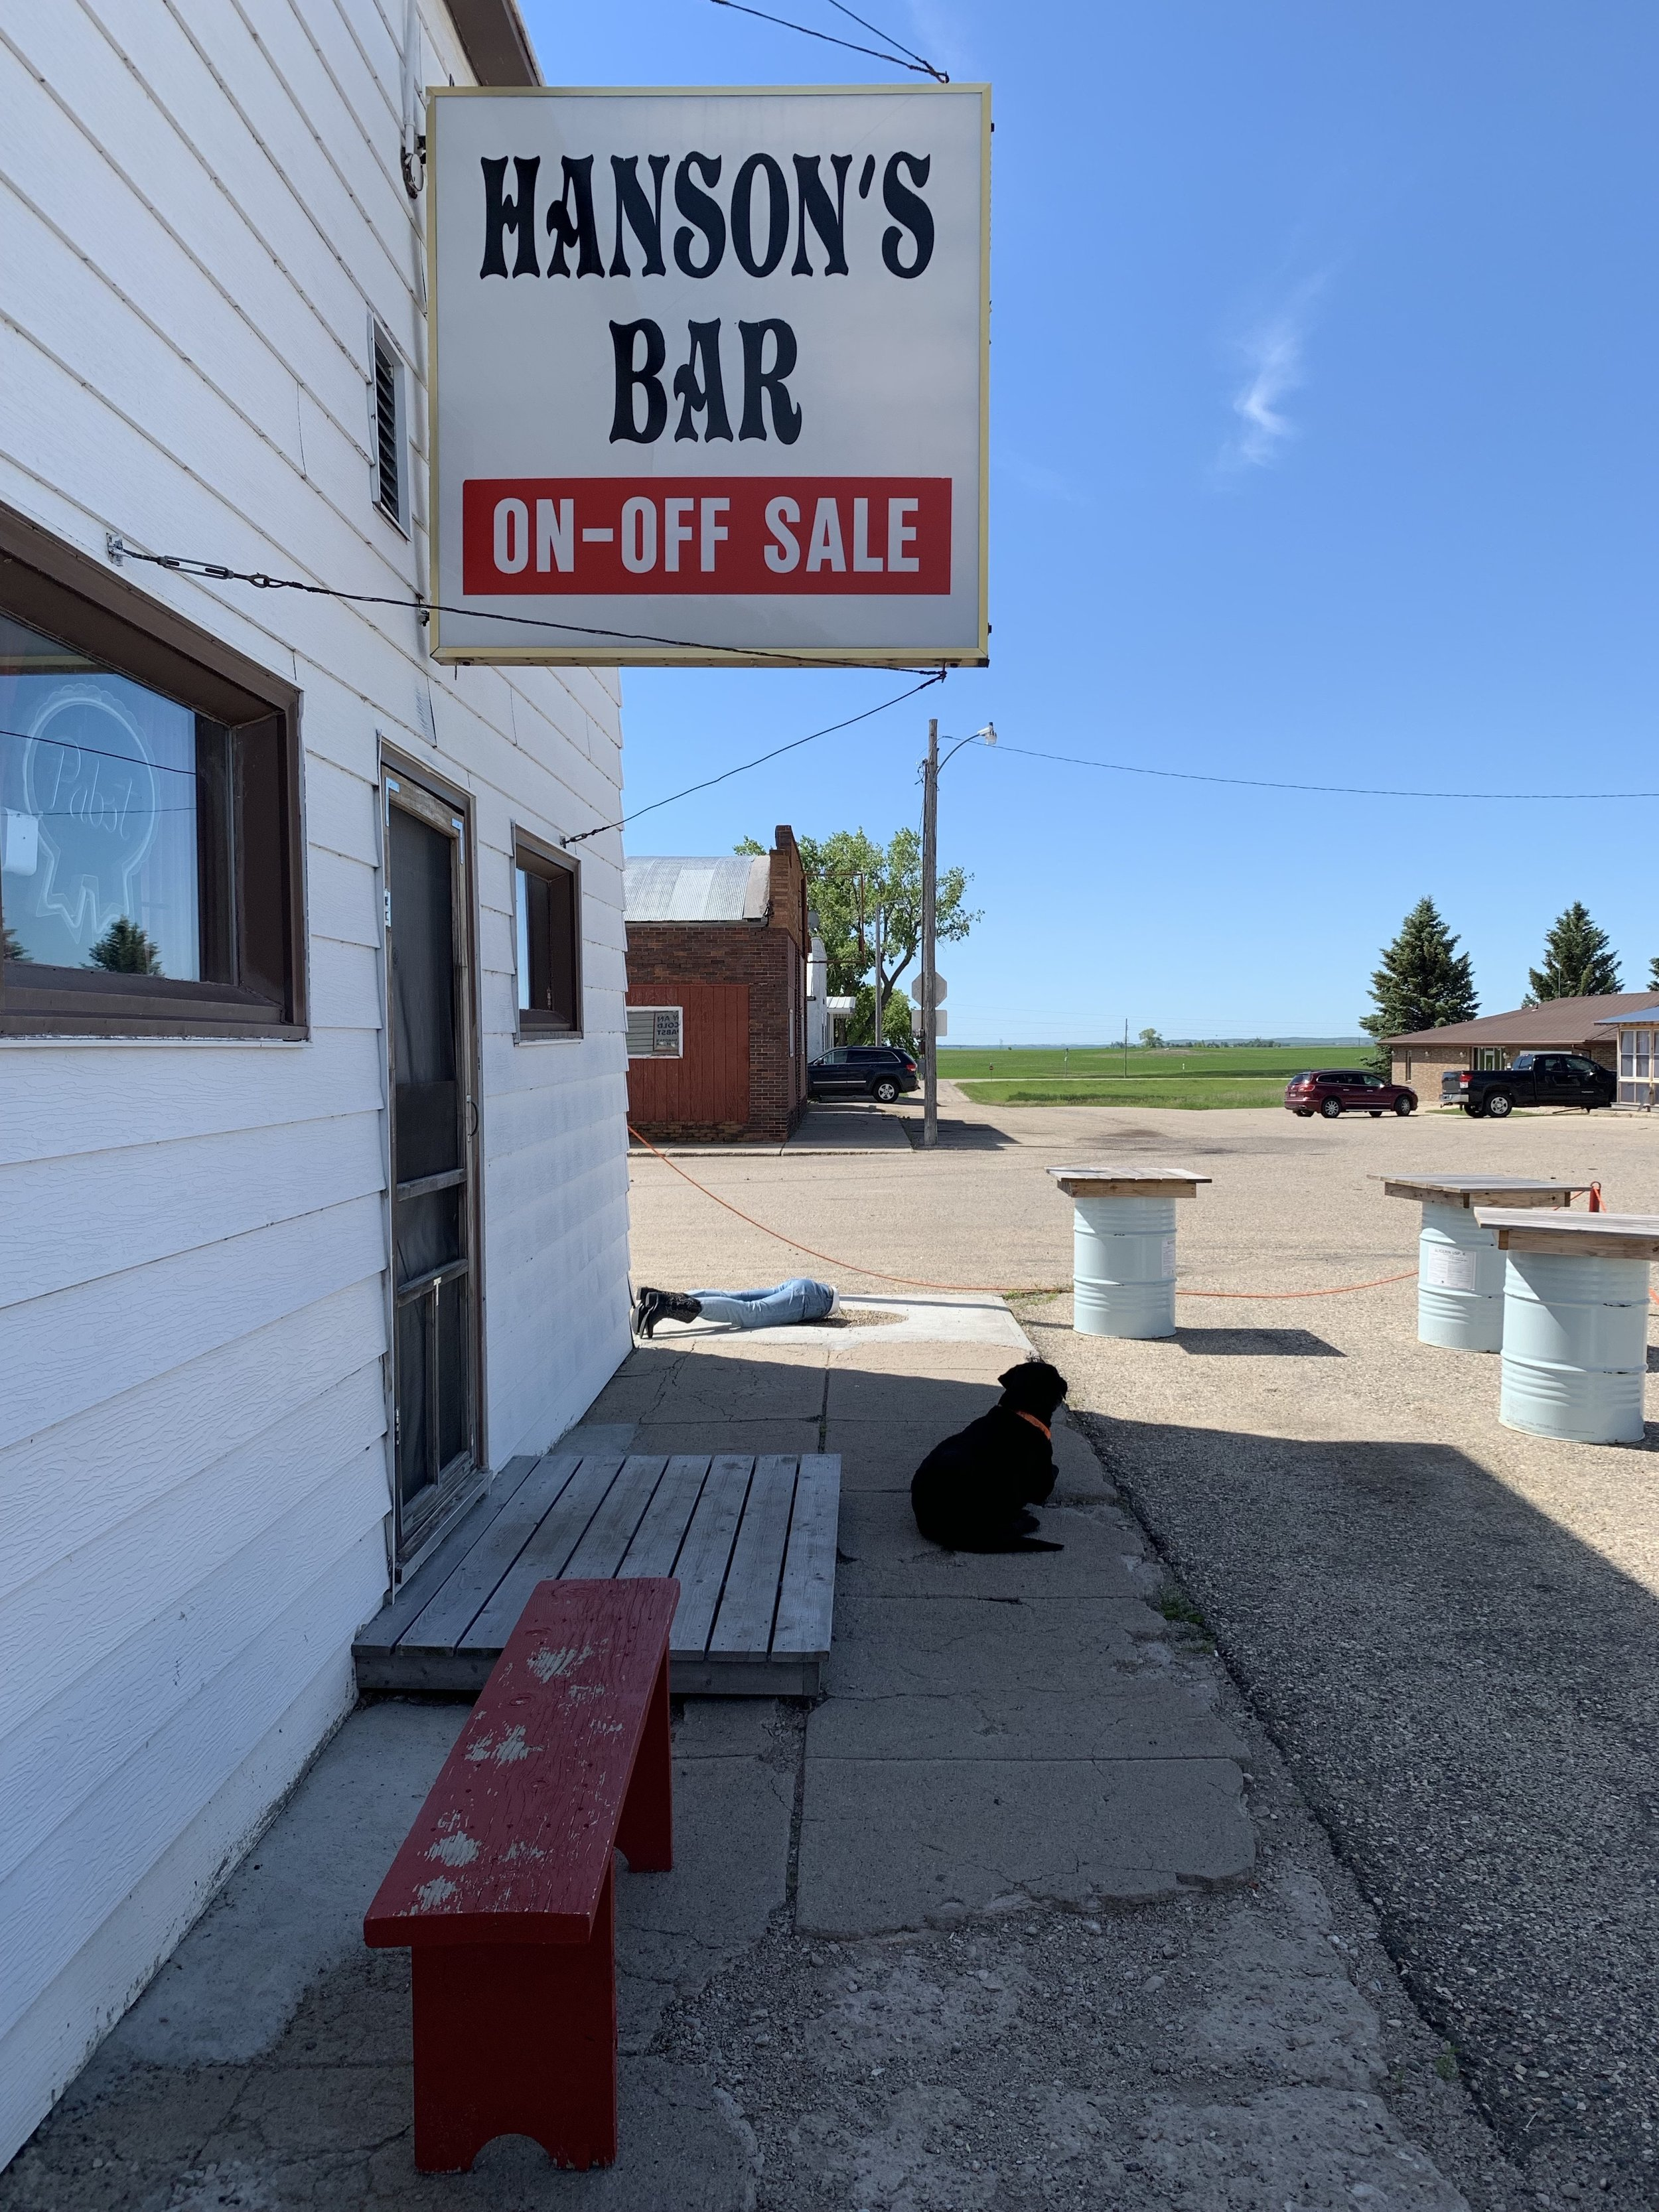 Hanson's Bar - the center of the Center for Determining Centers that has been overruled in its determination that it is the Center of North America. New favorite place in North America. Robinson, North Dakota